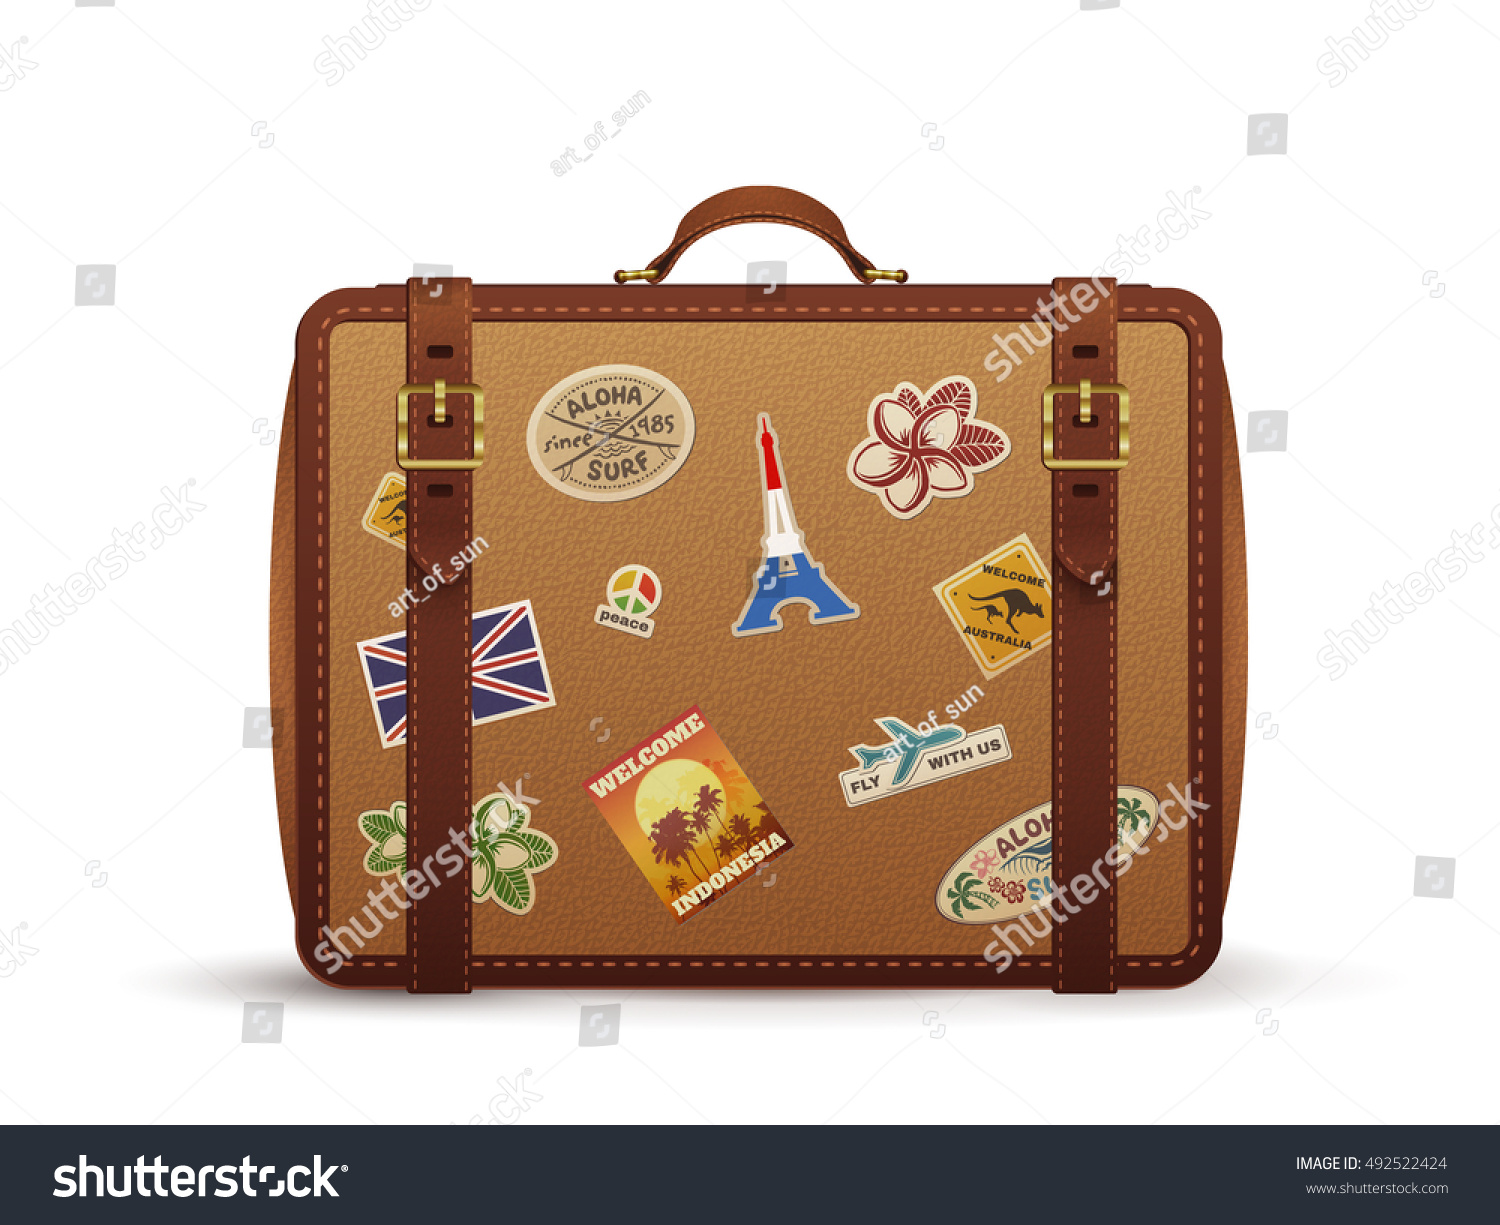 Old vintage leather suitcase with travel stickers vector illustration isolated on white